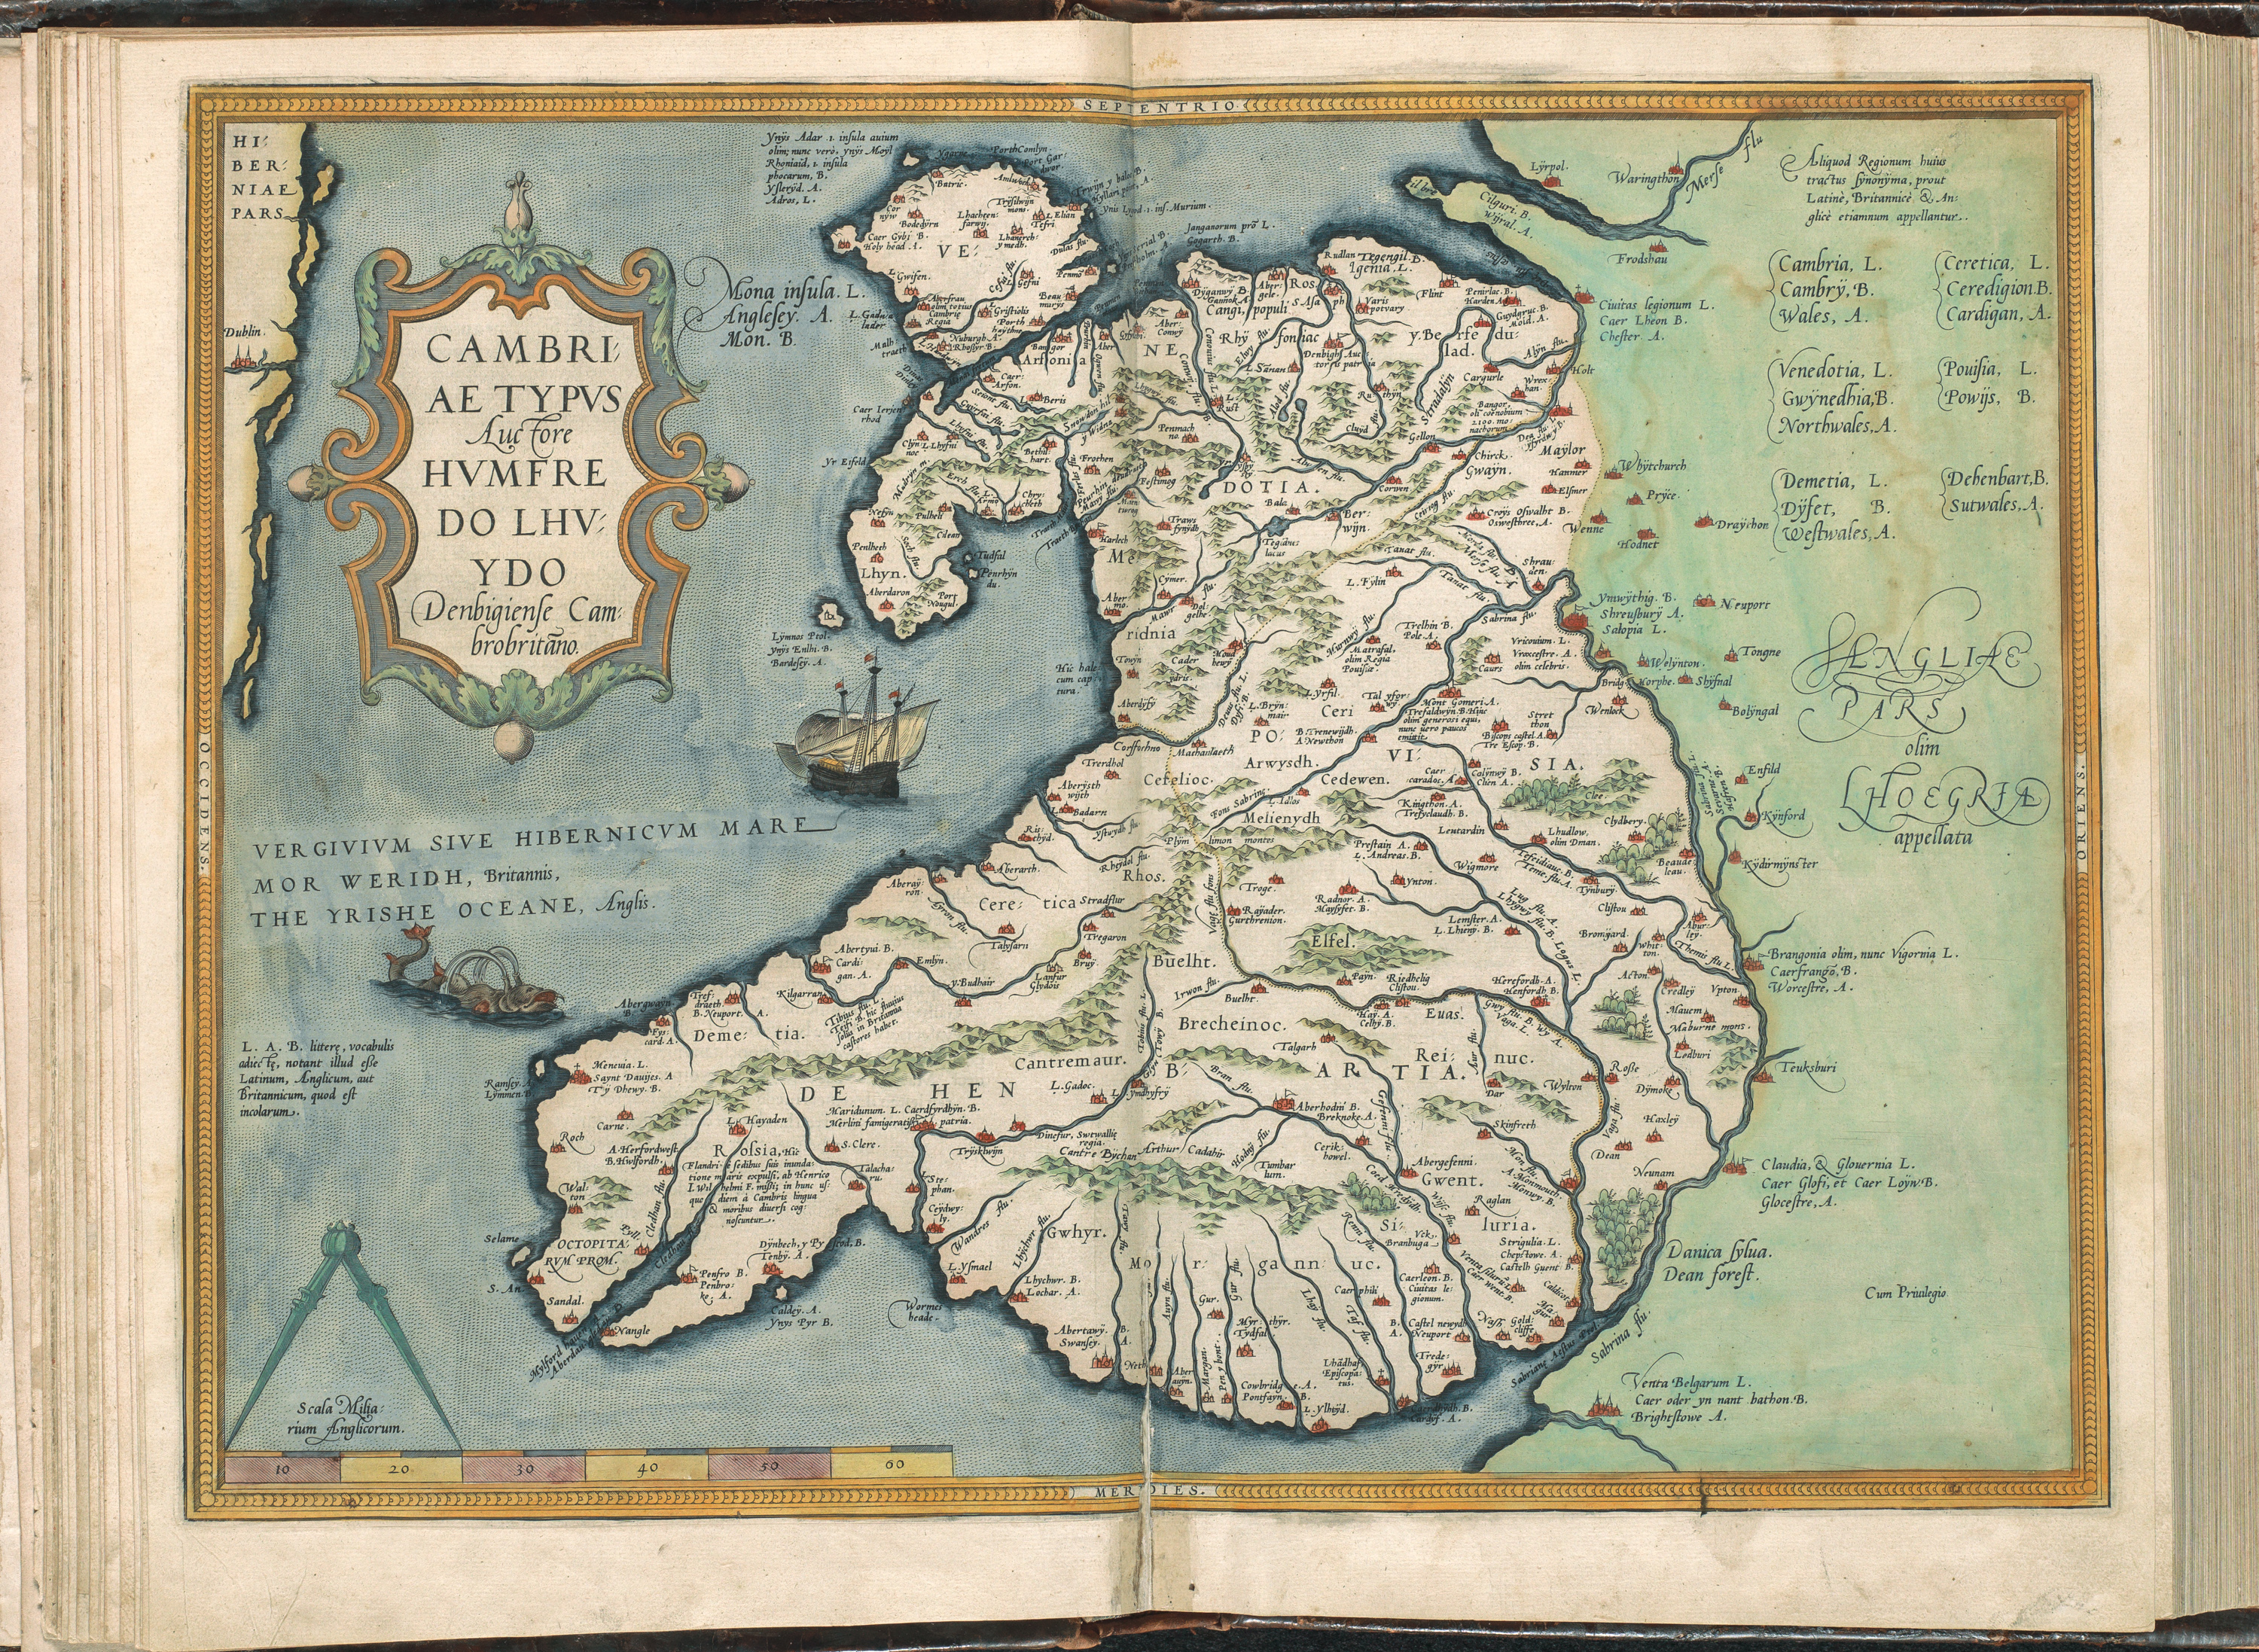 Map of Wales, from Atlas Ortelius by Abraham Ortelius. Original edition from 1571 - Image by Koninklijke Bibliotheek, the Dutch National Library